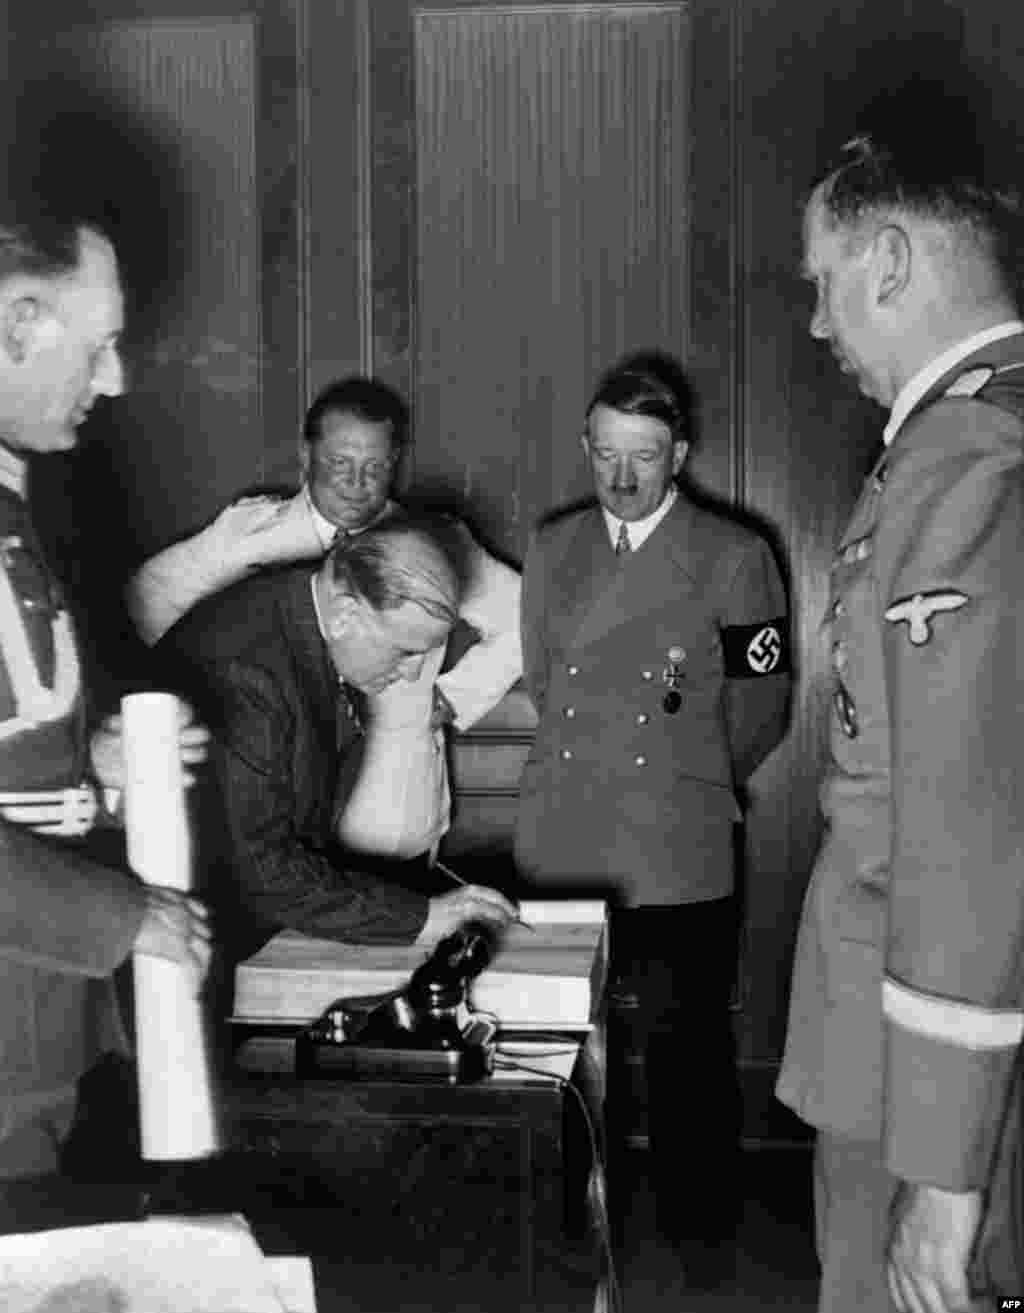 French Prime Minister Daladier signs the Munich Agreement as Hitler (second right), Reichsmarshal Hermann Goering (third left), Hitler's secretary Martin Bormann (right), and top Nazi officers look on. France refused to fight Germany alone and followed the British lead, despite a military pact with Czechoslovakia.